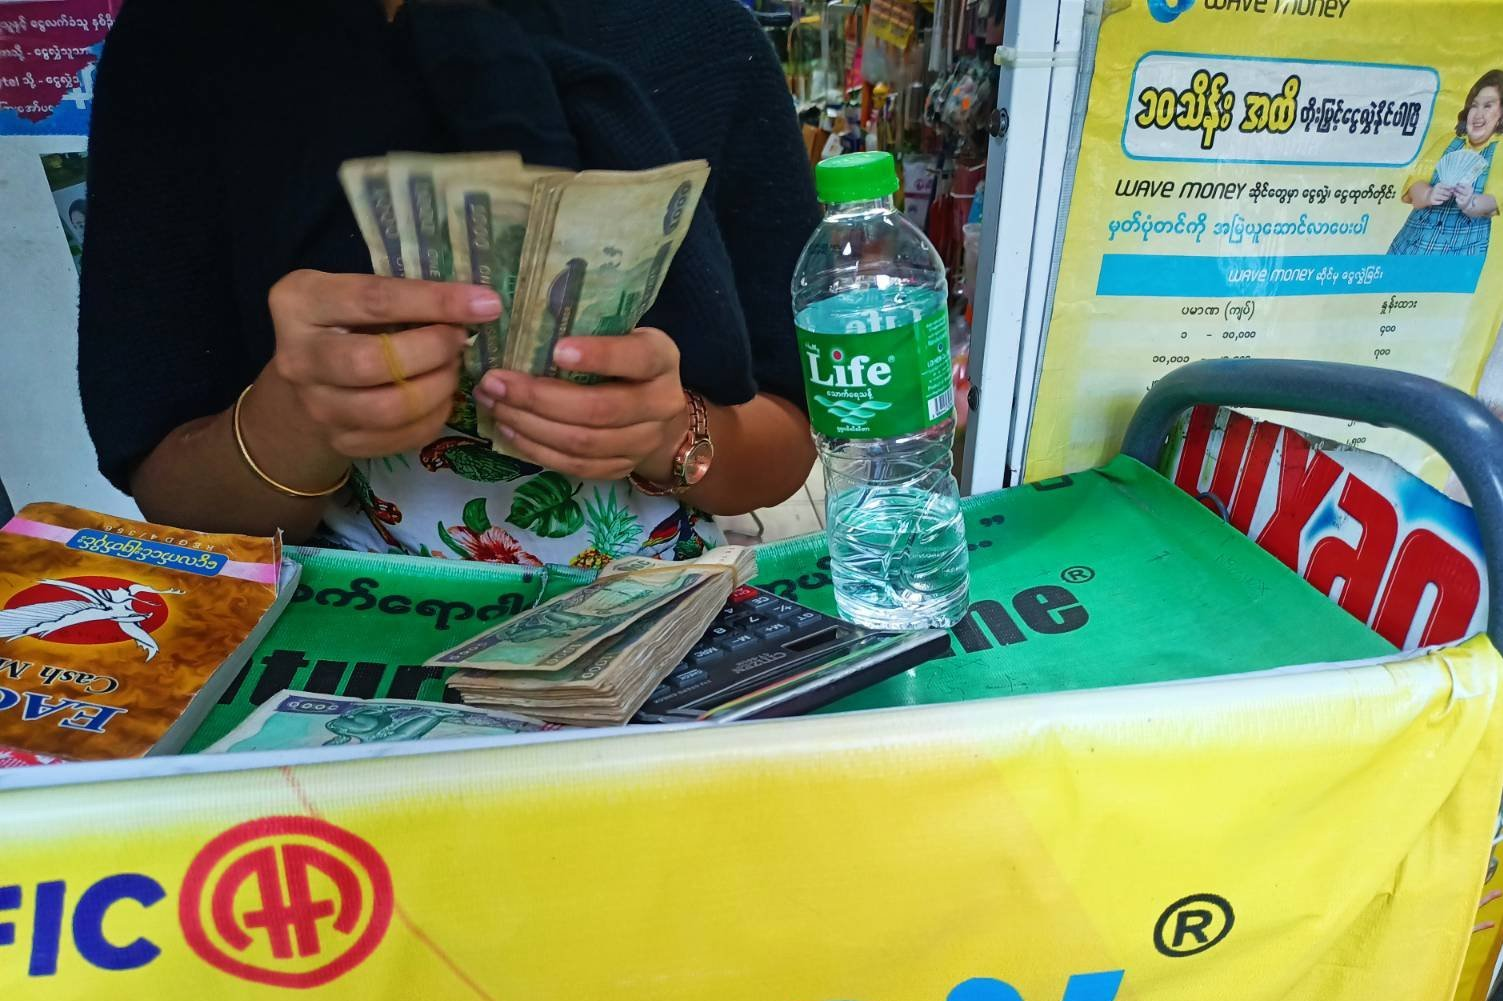 A Wave Money agent in Yangon counts cash before handing it over to a customer in May. Agents are charging 10 percent or more for cash withdrawals, in violation of company policy. (Frontier)